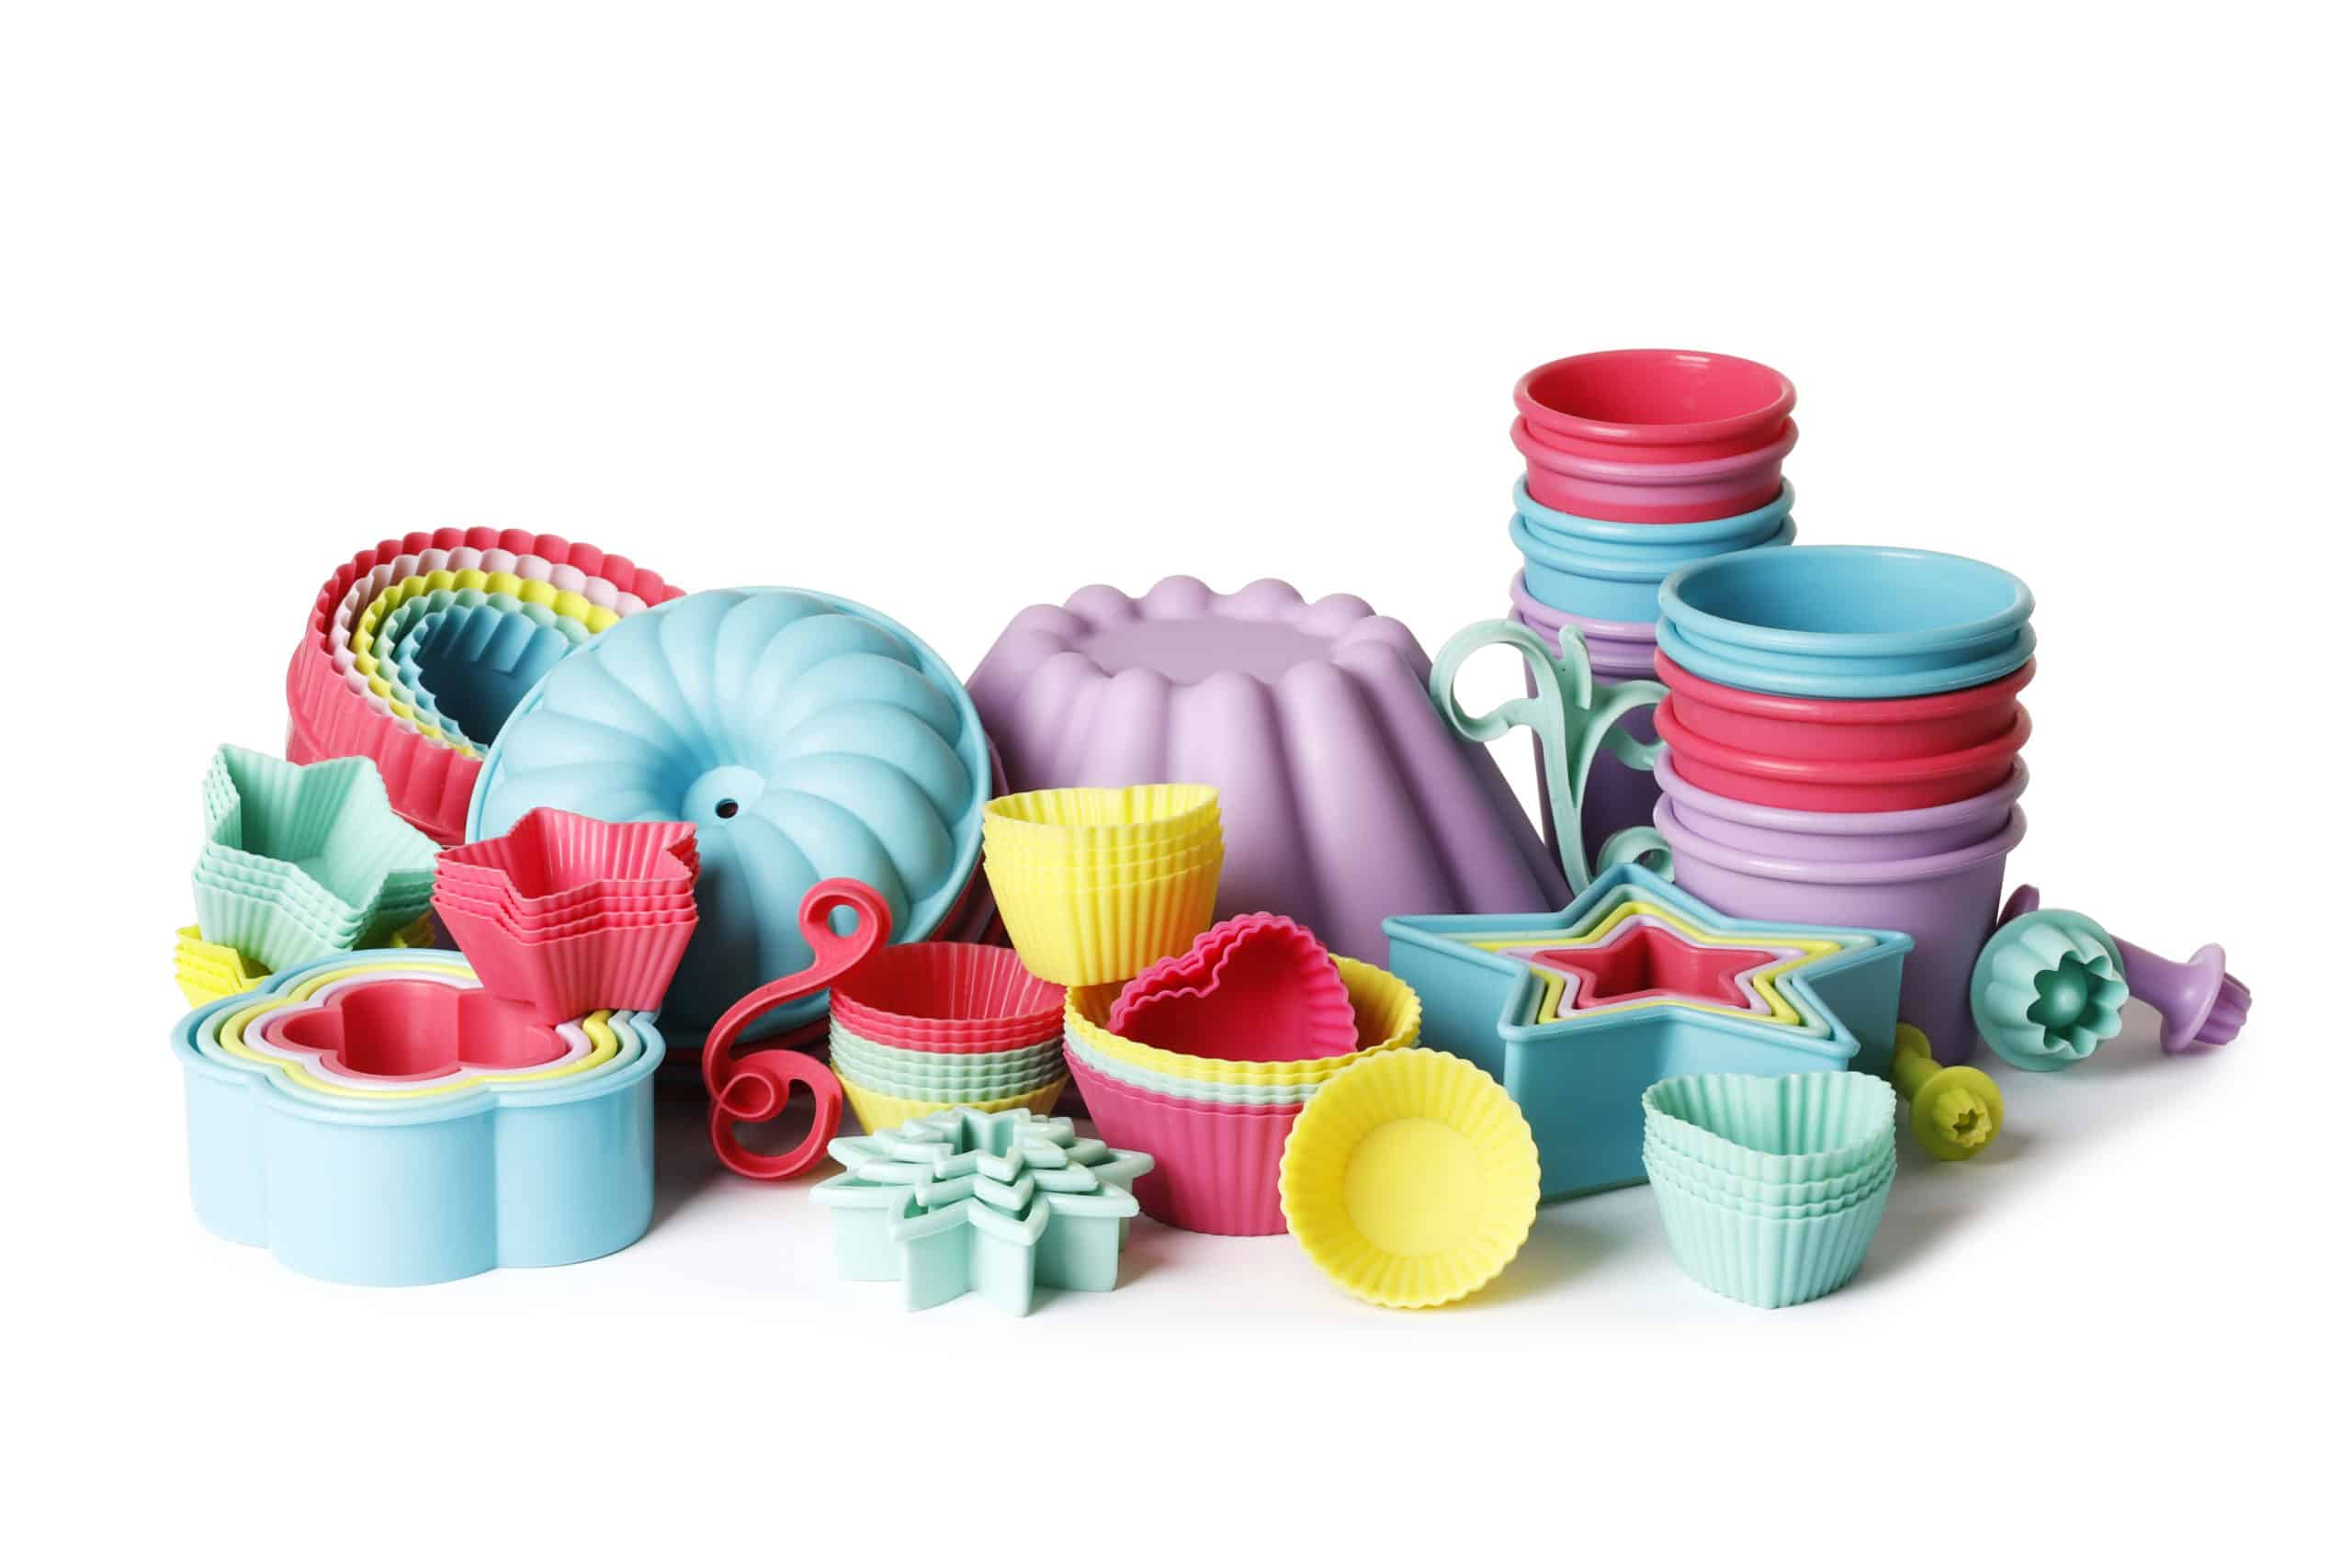 Silicone Bakeware Dangers